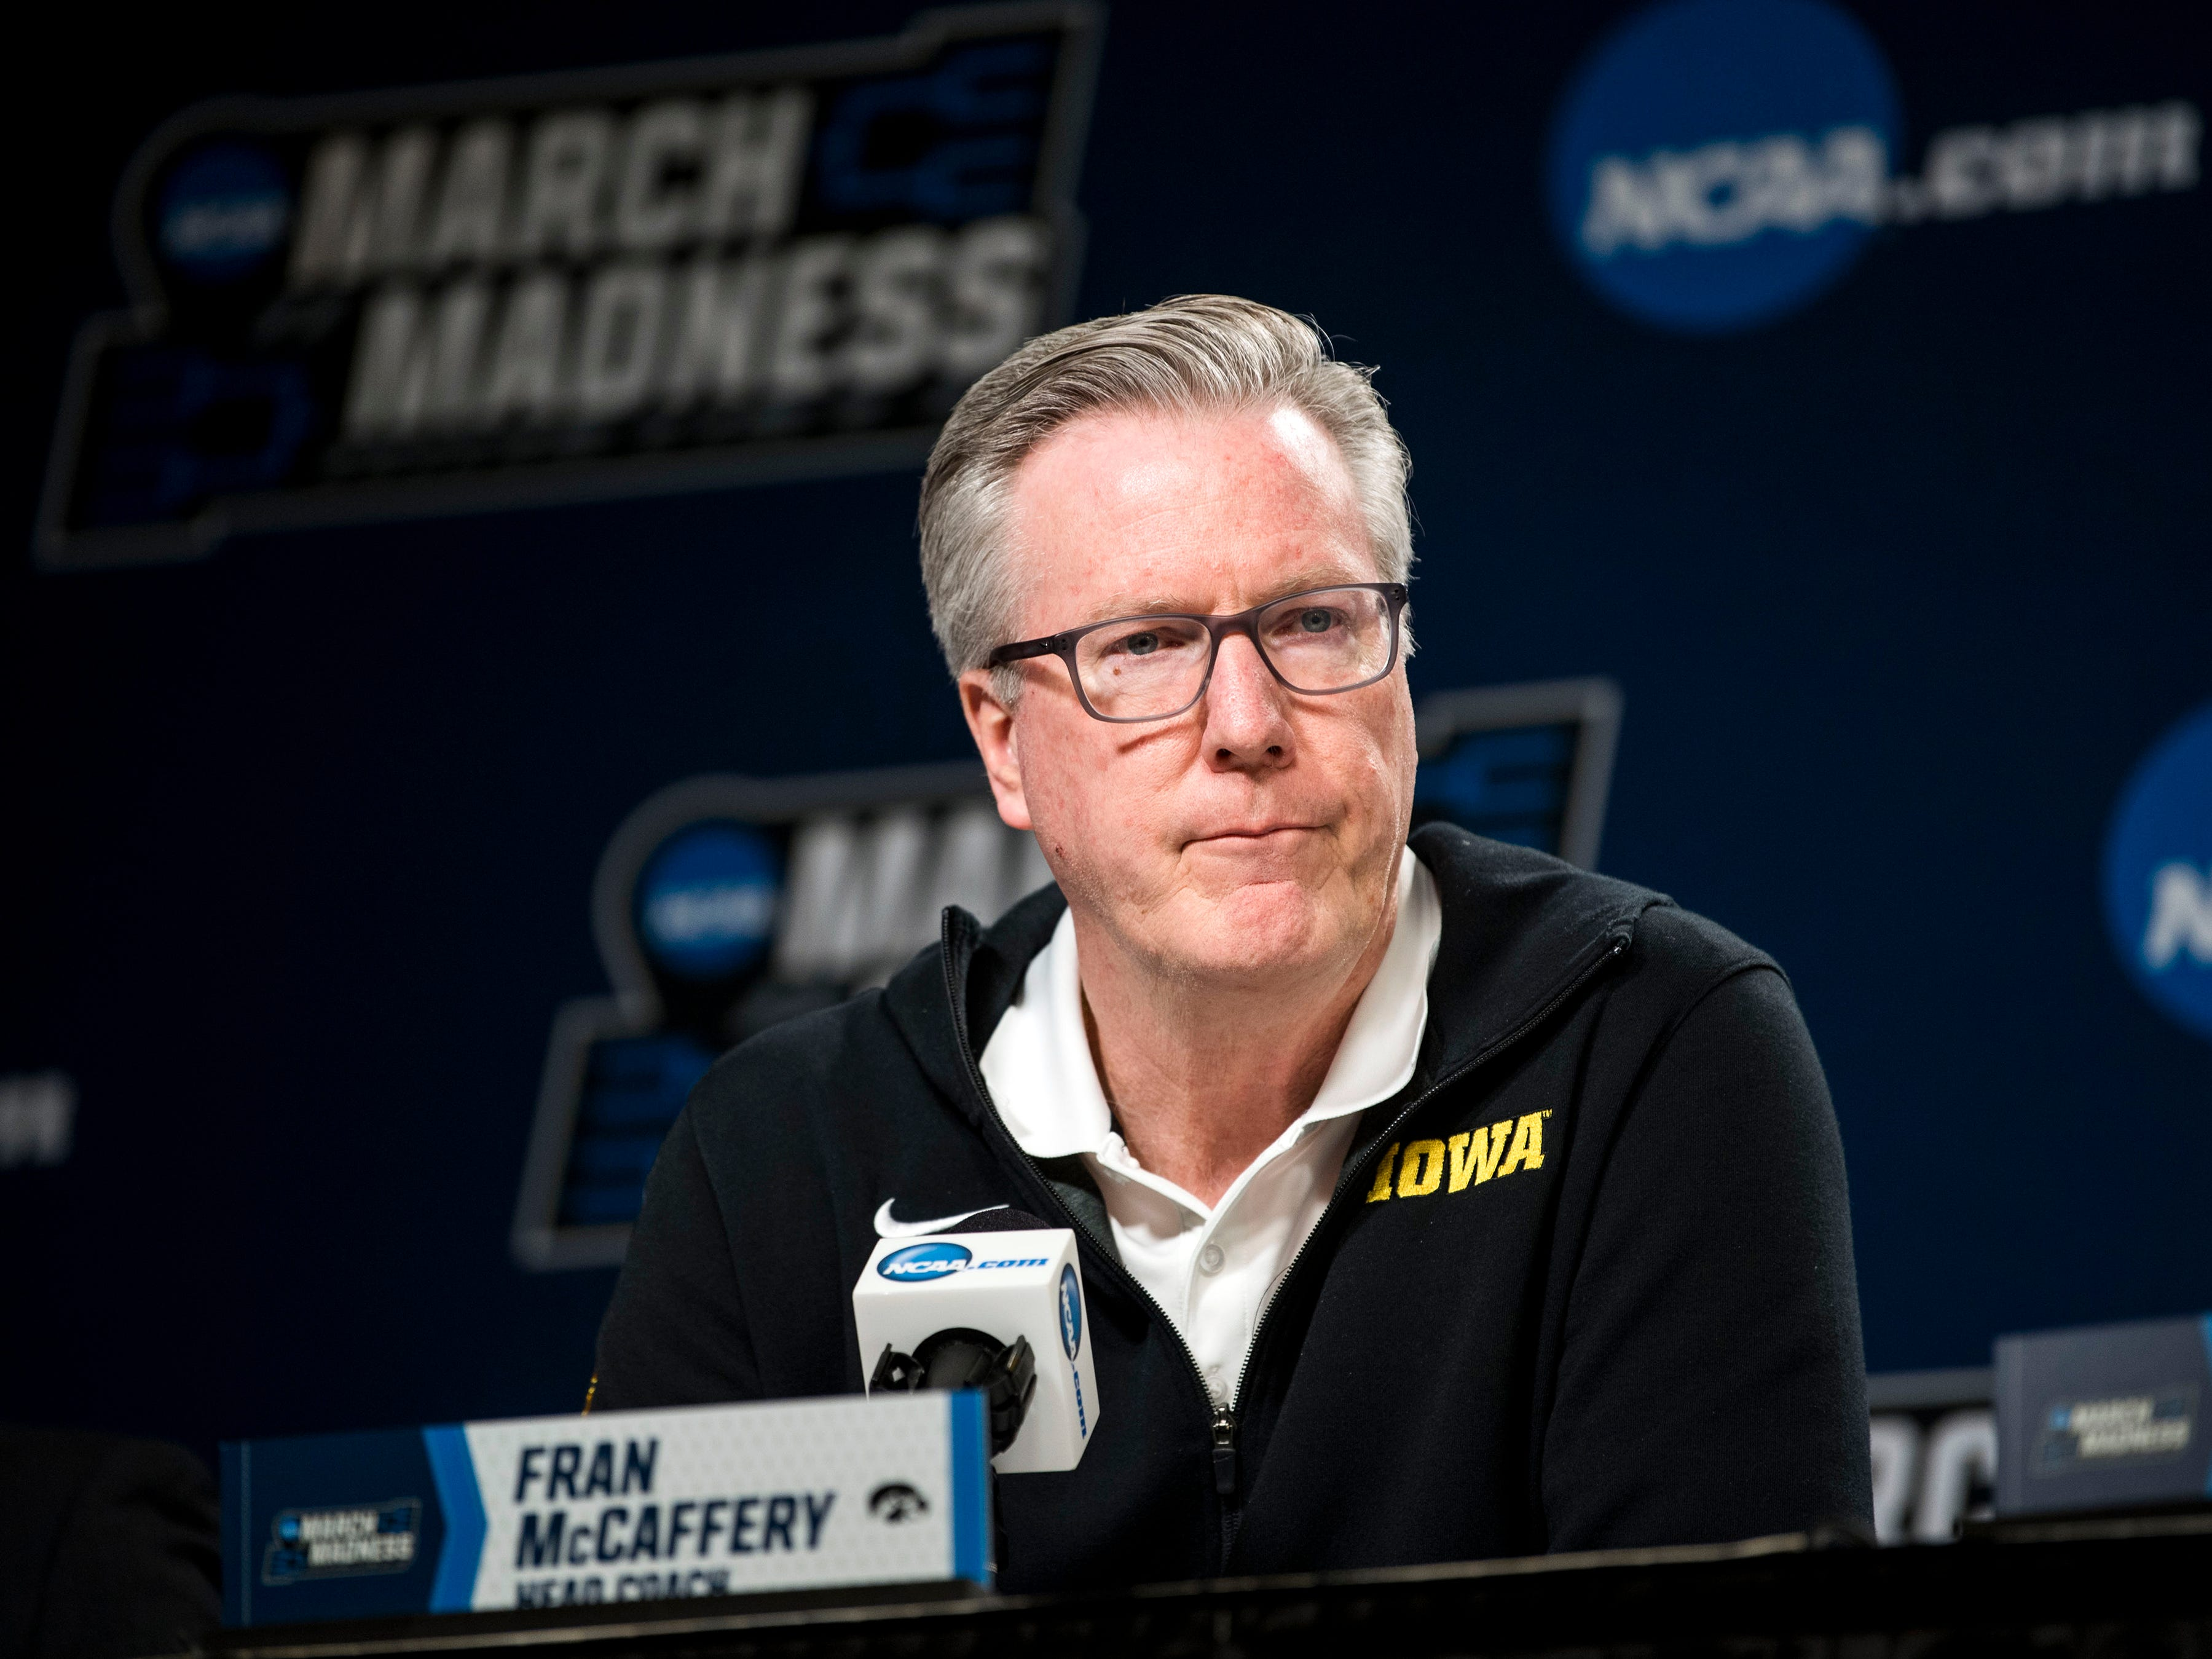 Iowa head coach Fran McCaffery speaks at a press conference on Saturday, March 23, 2019, before the Tennessee Volunteers and Iowa Hawkeyes compete against one another in the second round of the NCAA Tournament held at Nationwide Arena in Columbus, Ohio on Sunday, March 24, 2019.